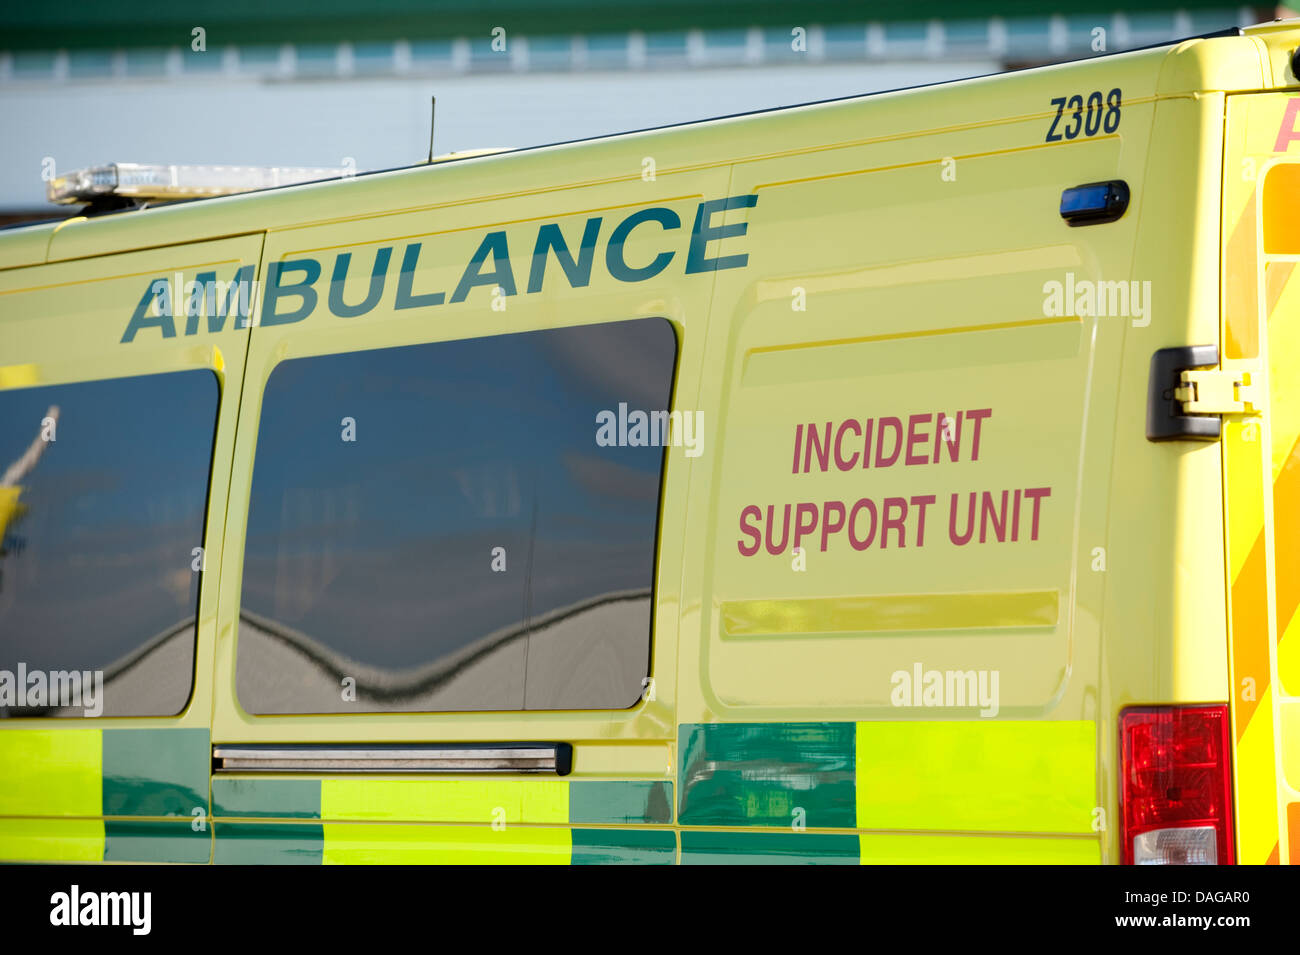 Ambulance Paramedic Incident Support Unit - Stock Image